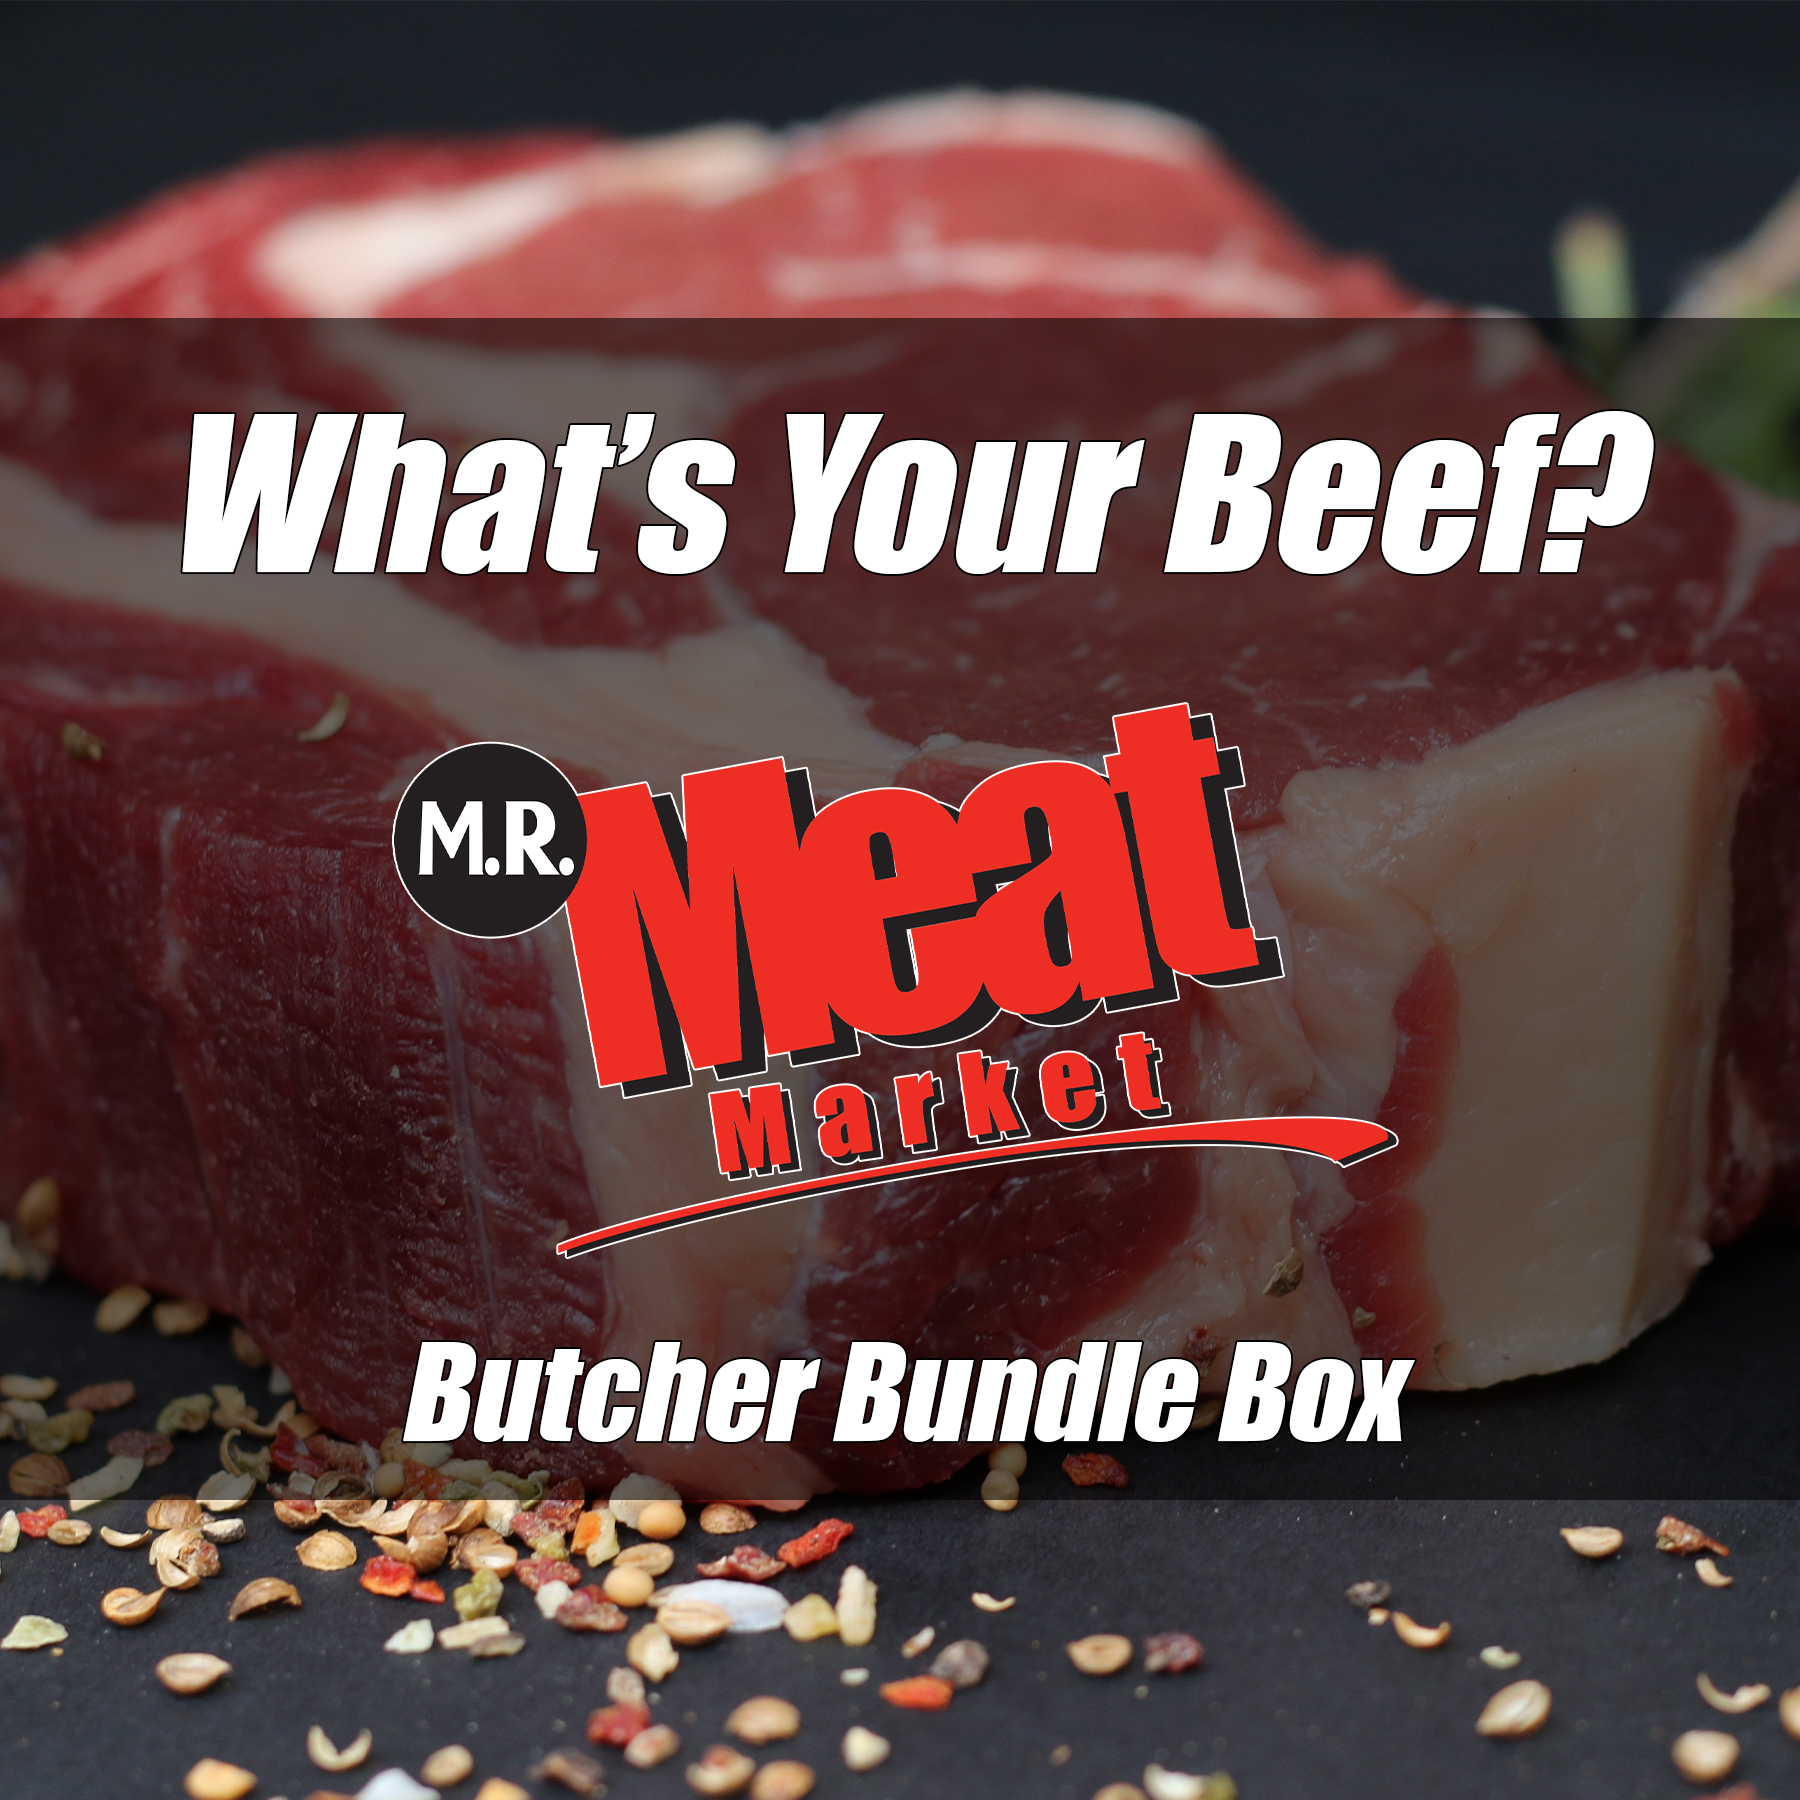 What's your beef?